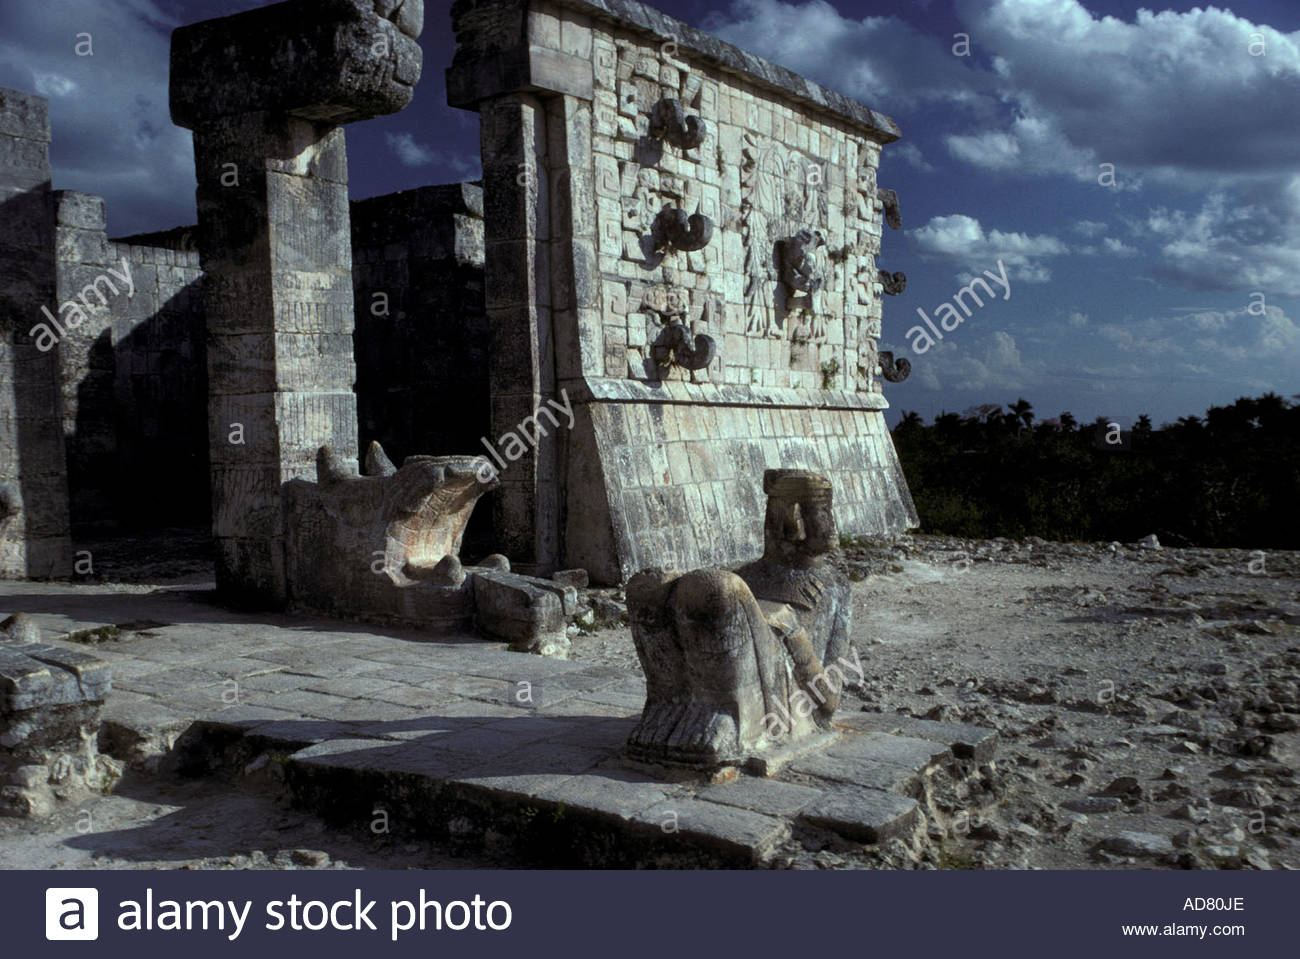 MEXICO Yucatan State, Chichen Itza, post-classic  Maya culture :the' Chacmol' in the Temple of the Warriors; 1000-1200 A.E. - Stock Image